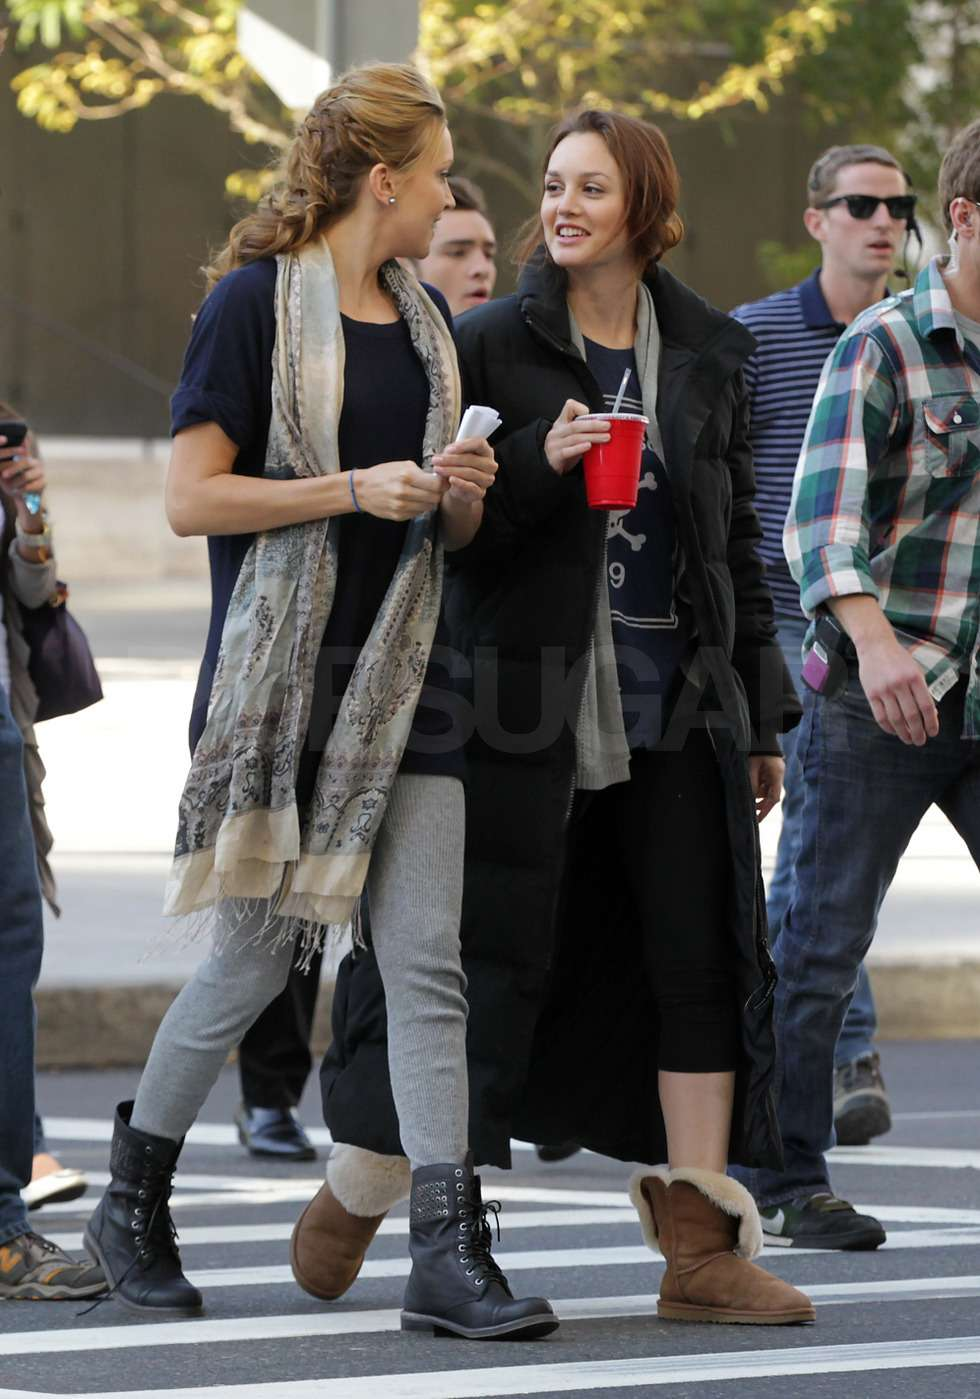 Leighton Meester And Katie Cassidy Gossip Girl | www ...